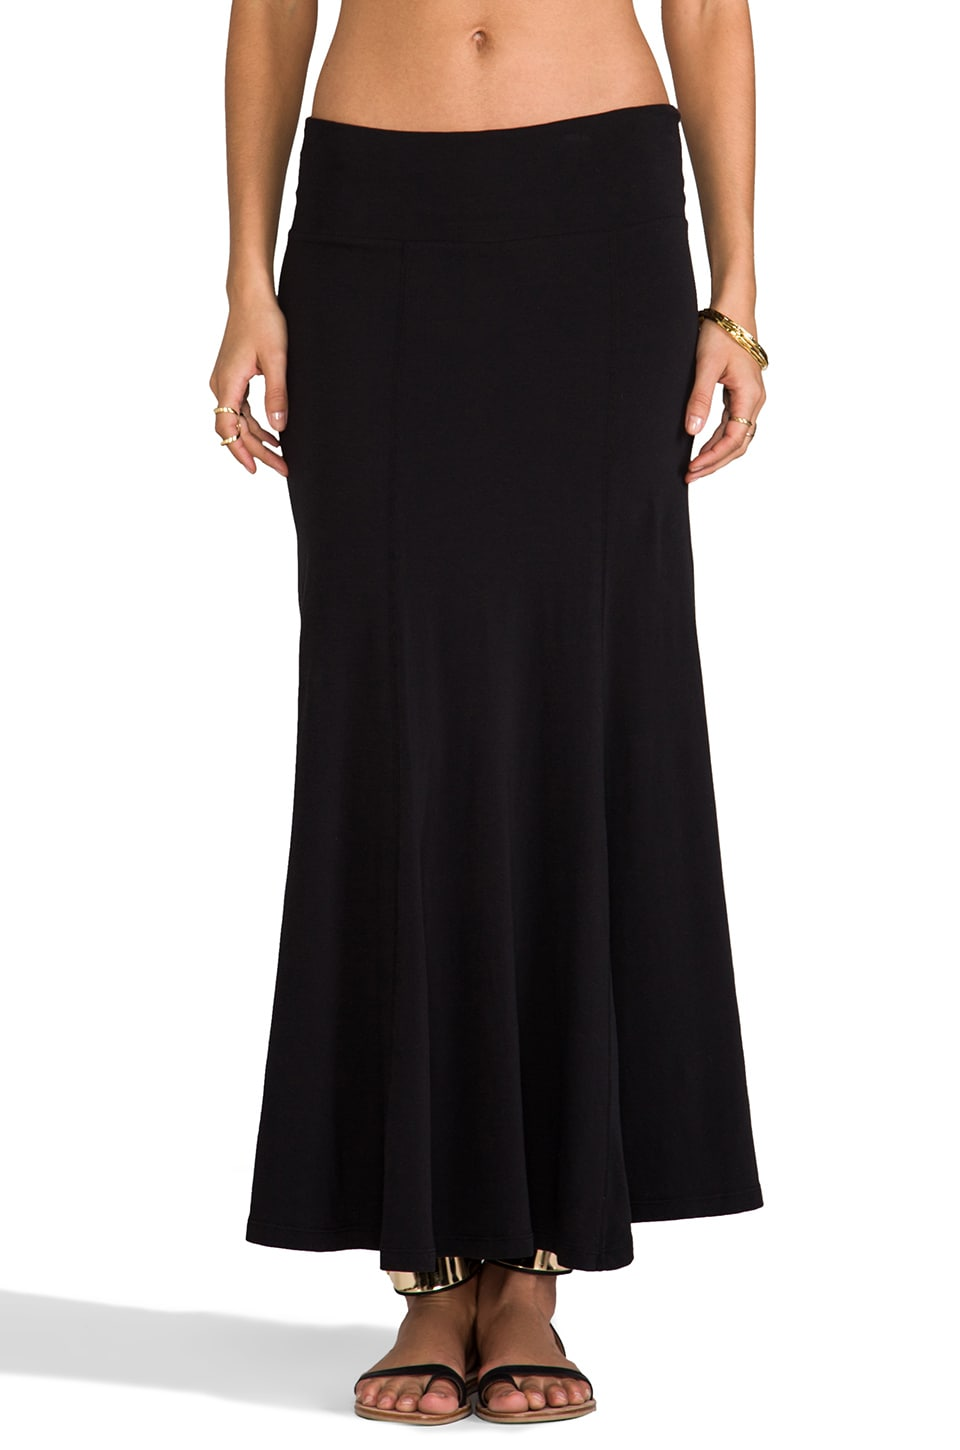 James Perse Maxi Flare Skirt in Black